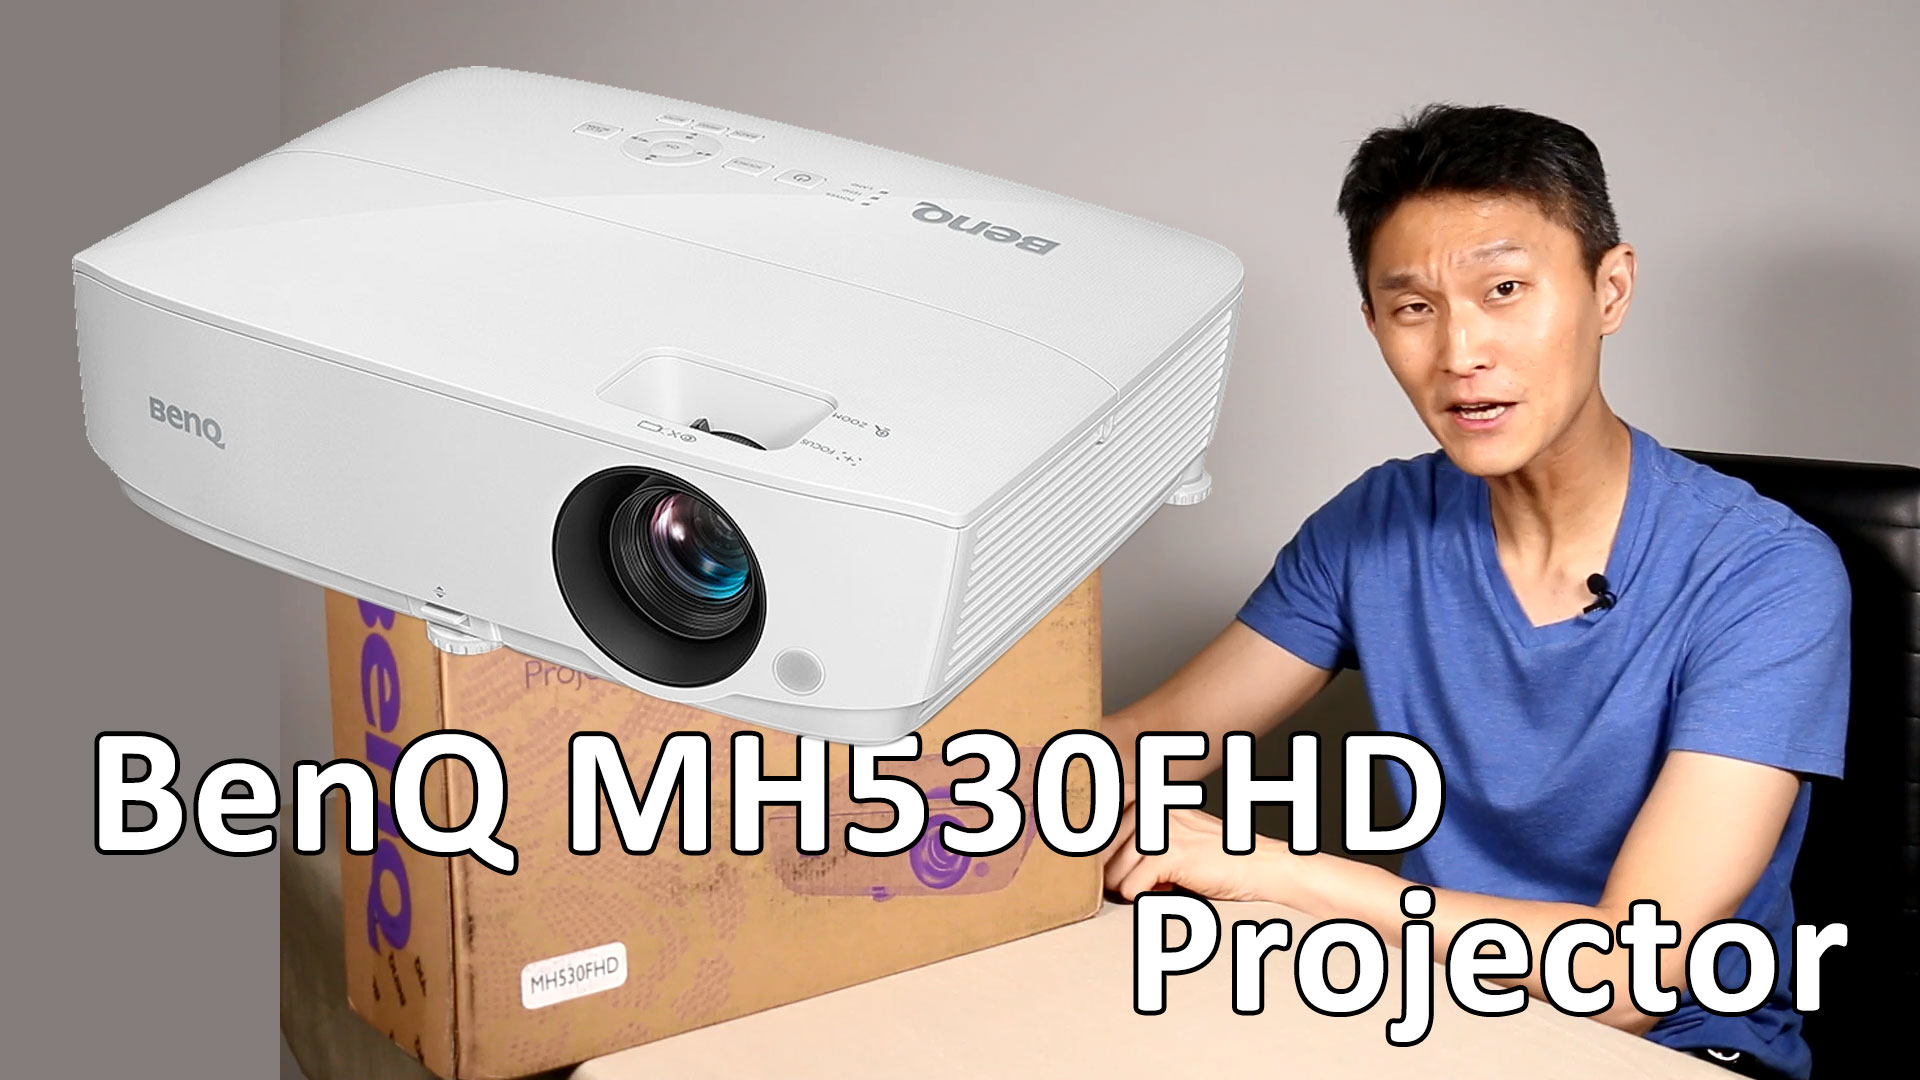 BenQ MH530FHD Projector